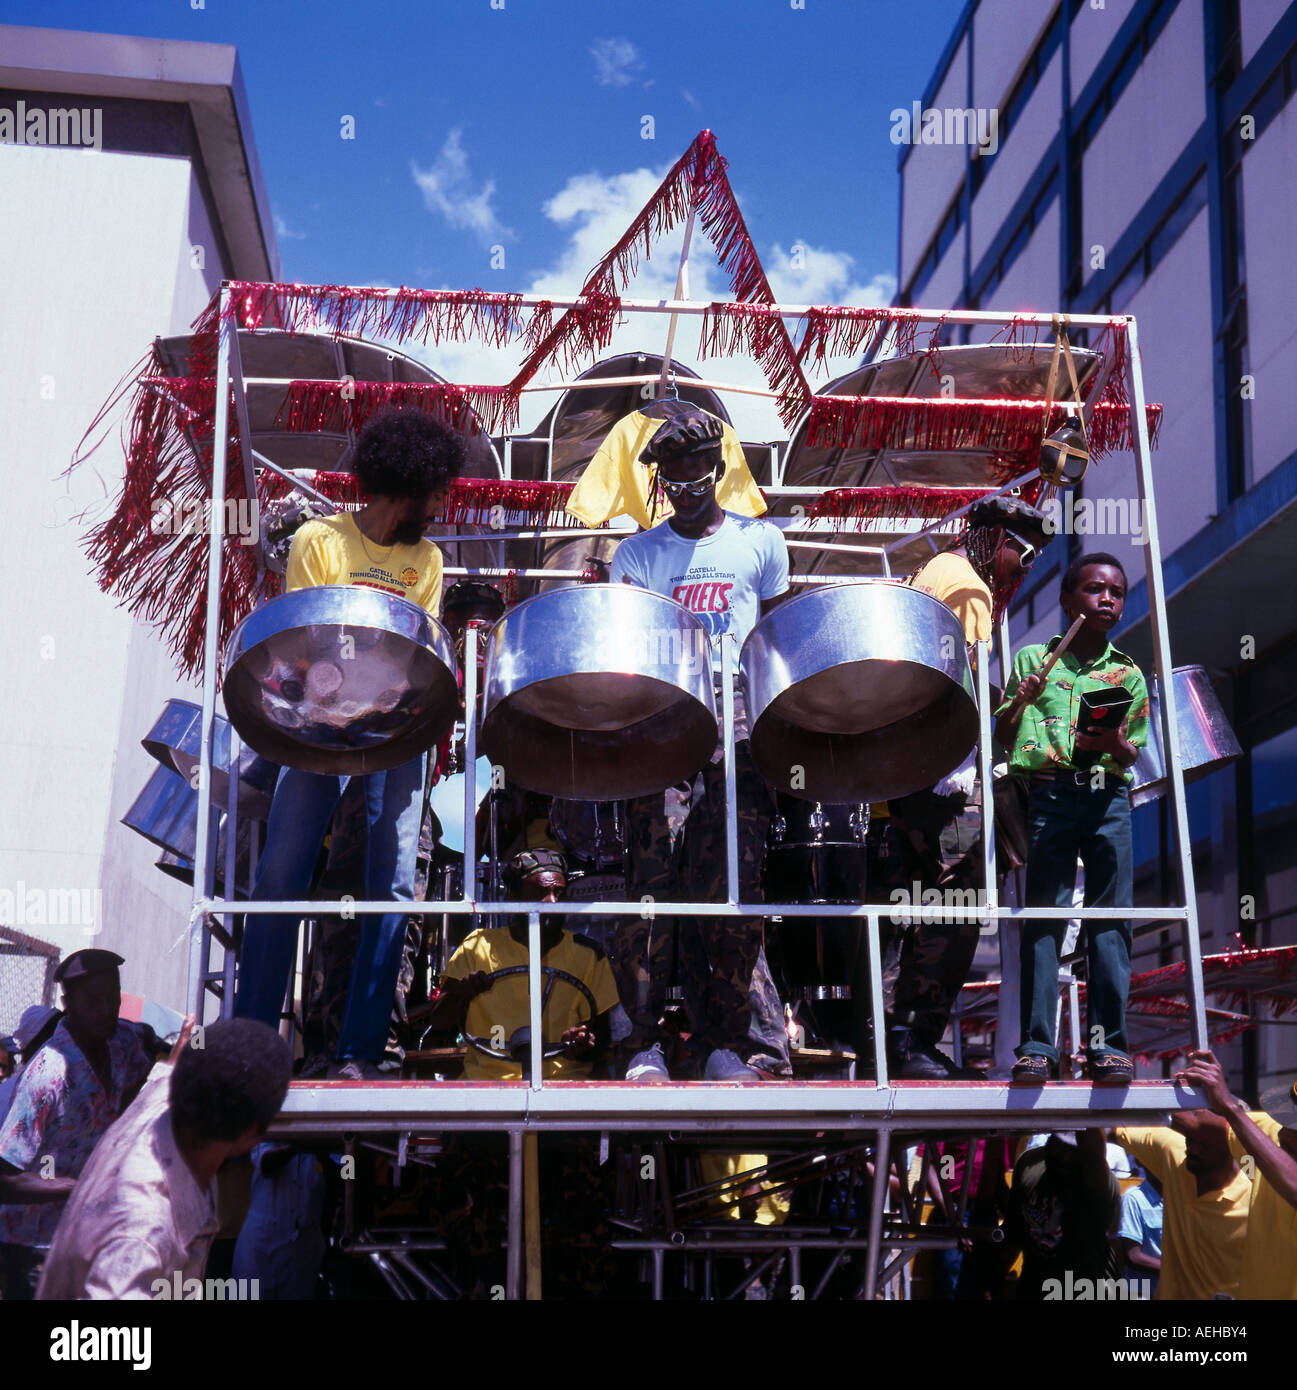 image band caribbean bands entertainment steel htm steelband